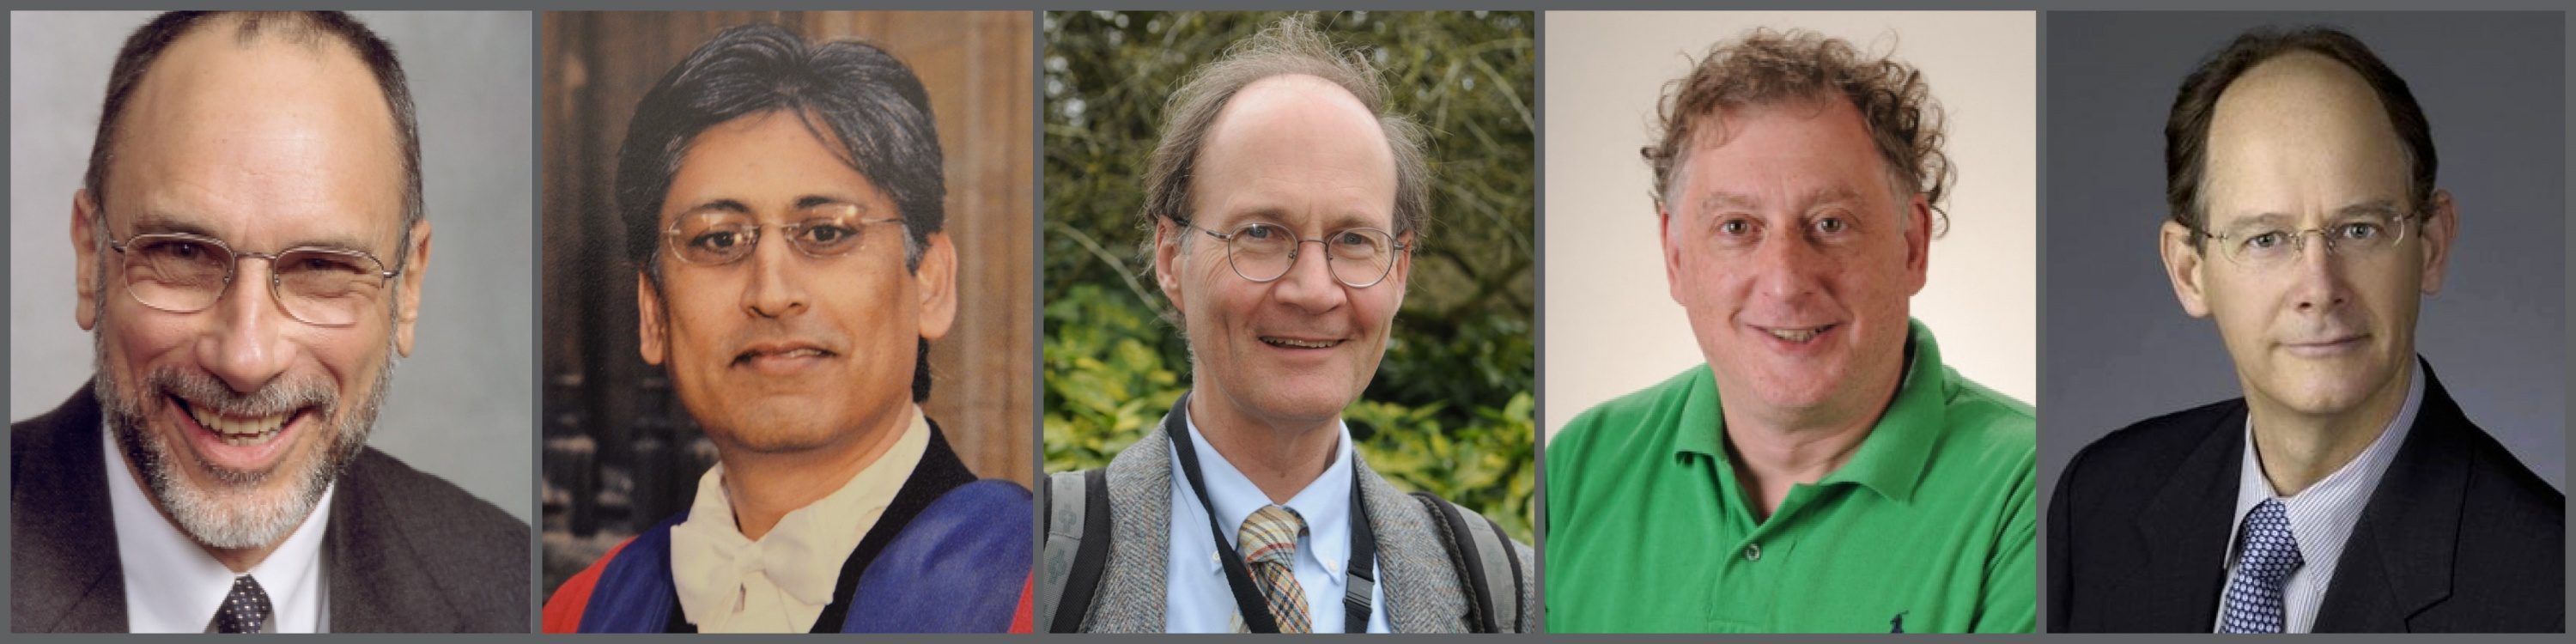 Three Isye Researchers Receive 2016 Golden Goose Award For